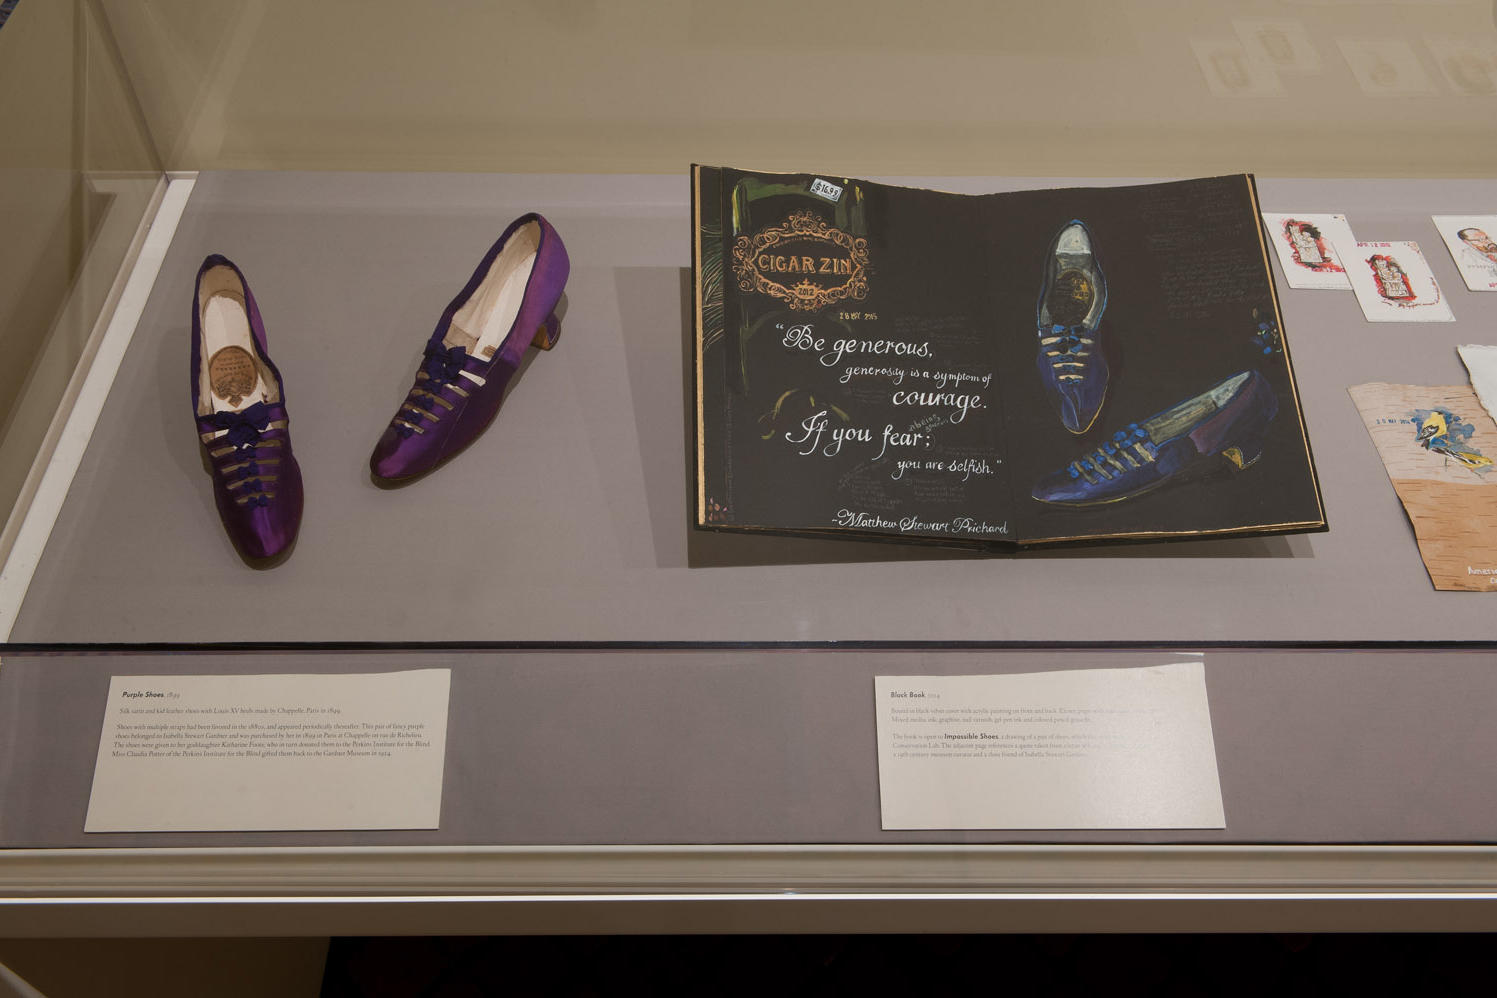 Purple Shoes, 1899, Made by Chappelle in Paris and owned by Isabella Stewart Gardner. Charmaine Wheatley, Black Book, 2014 open to Impossible Shoes, a painting of Gardner's shoes, which the artist made in the Textile Conservation Lab. Photo: George Bouret